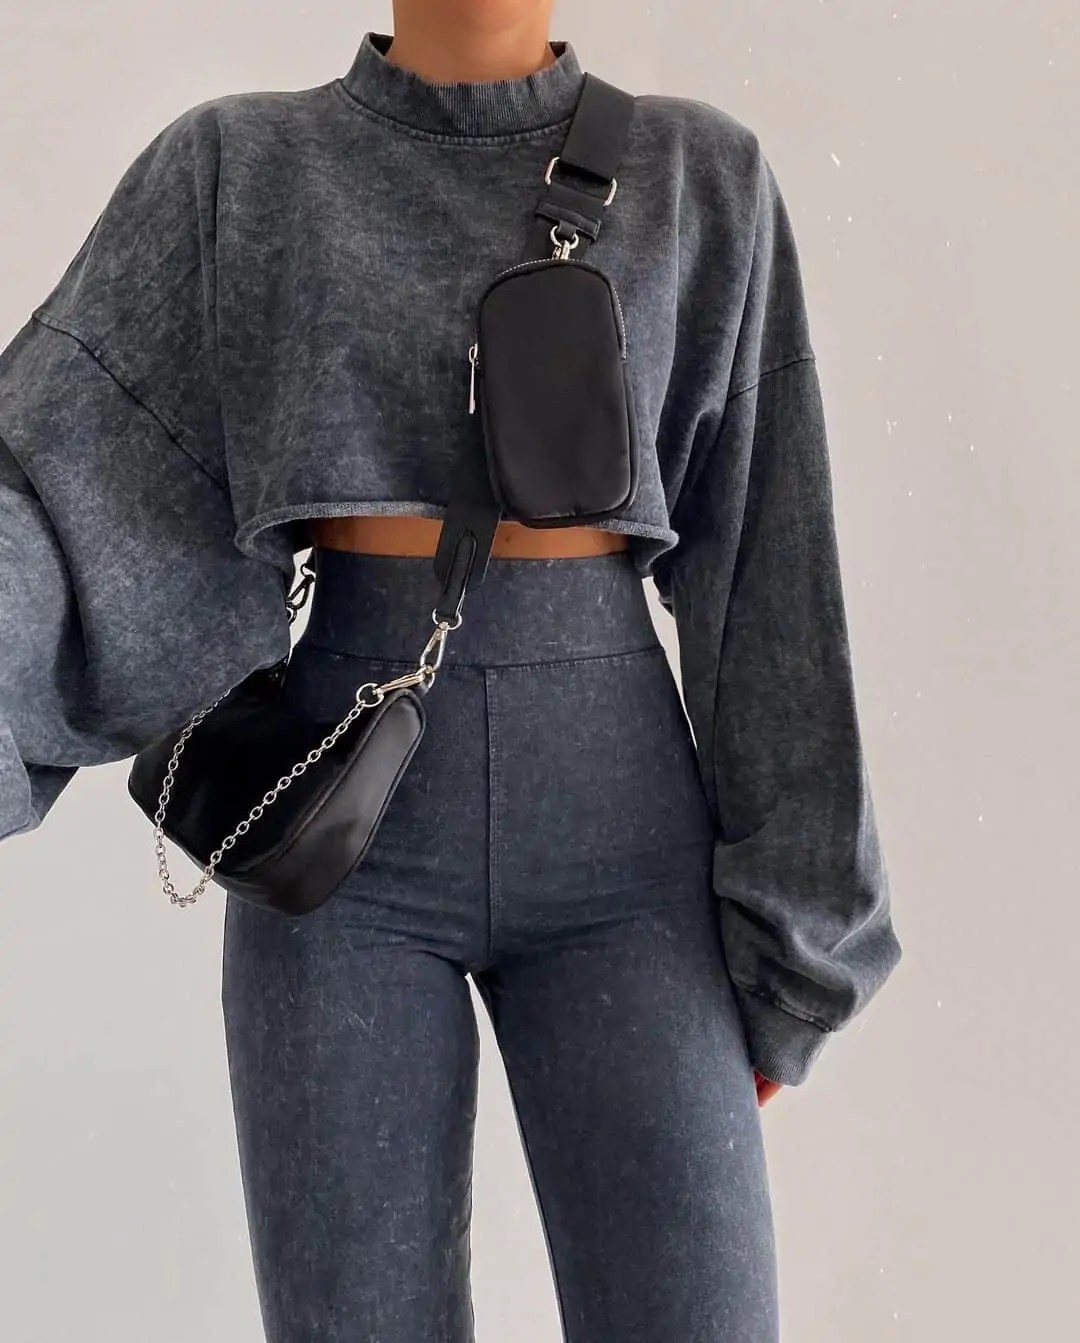 100+ Outfits to Inspire your next shopping haul 151